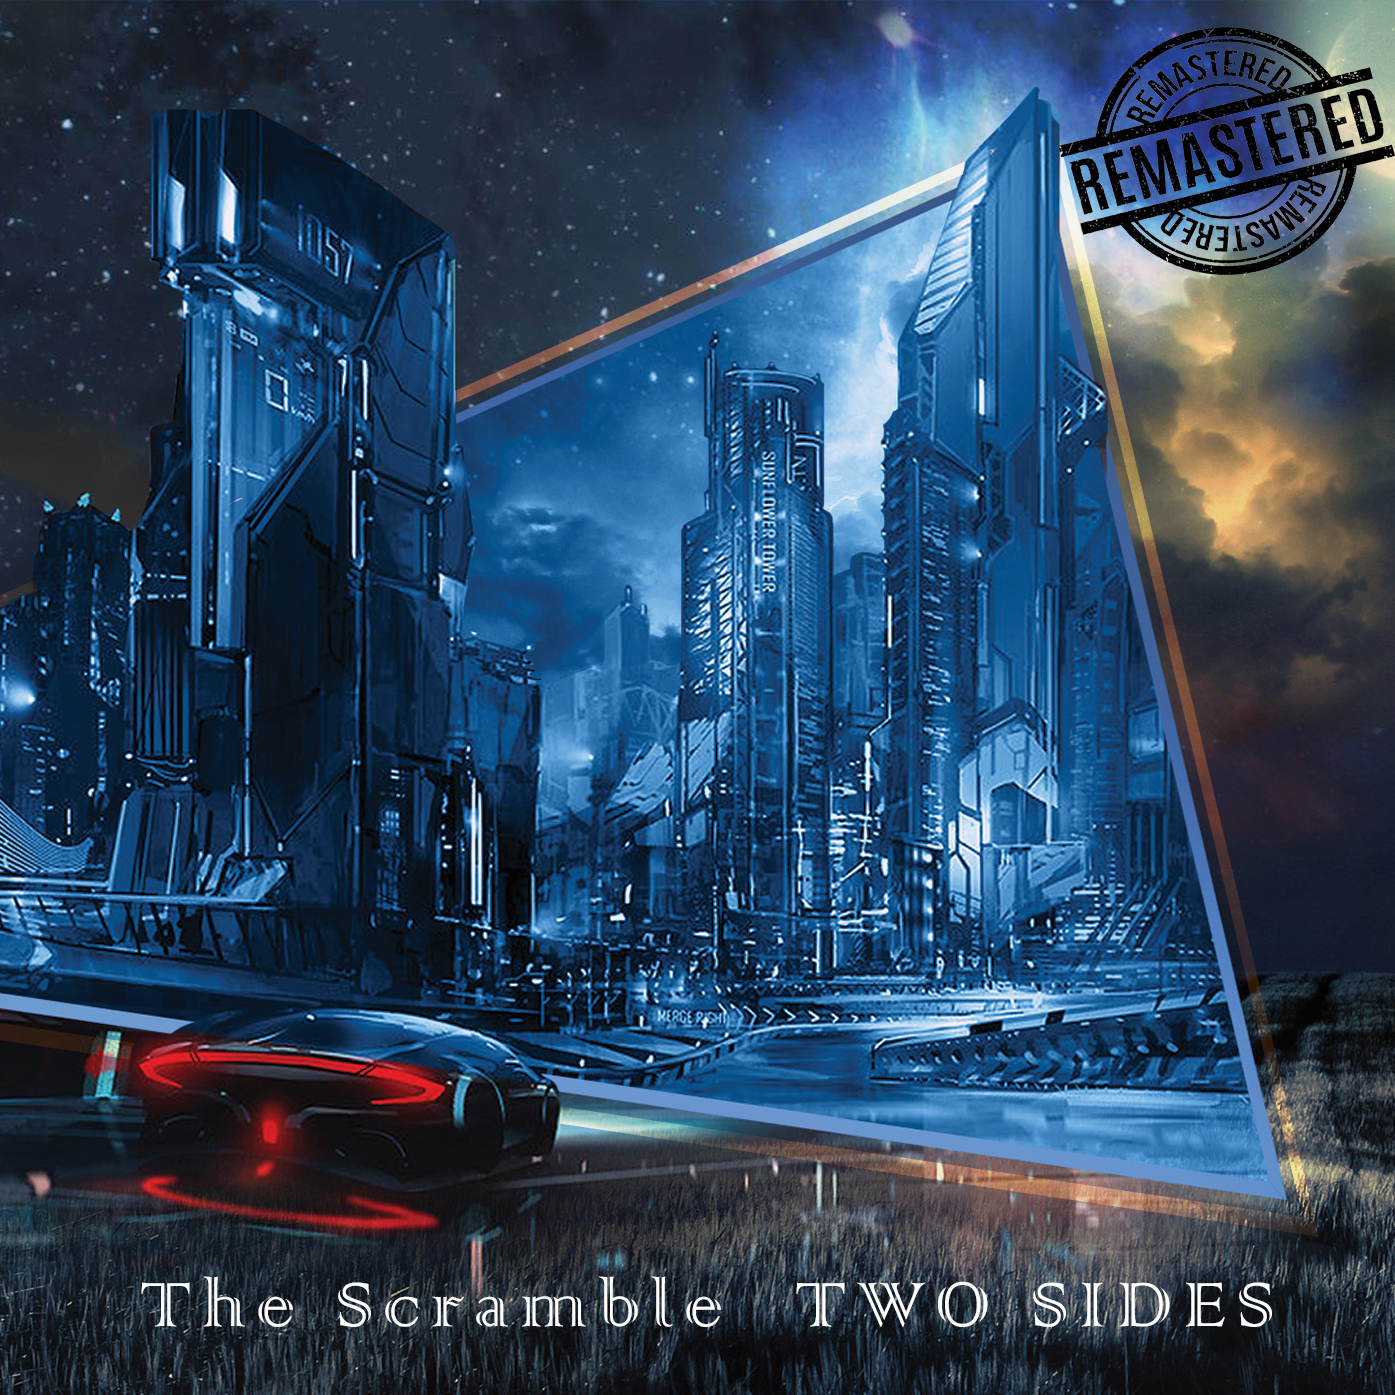 Two Sides (Remastered) by The Scramble